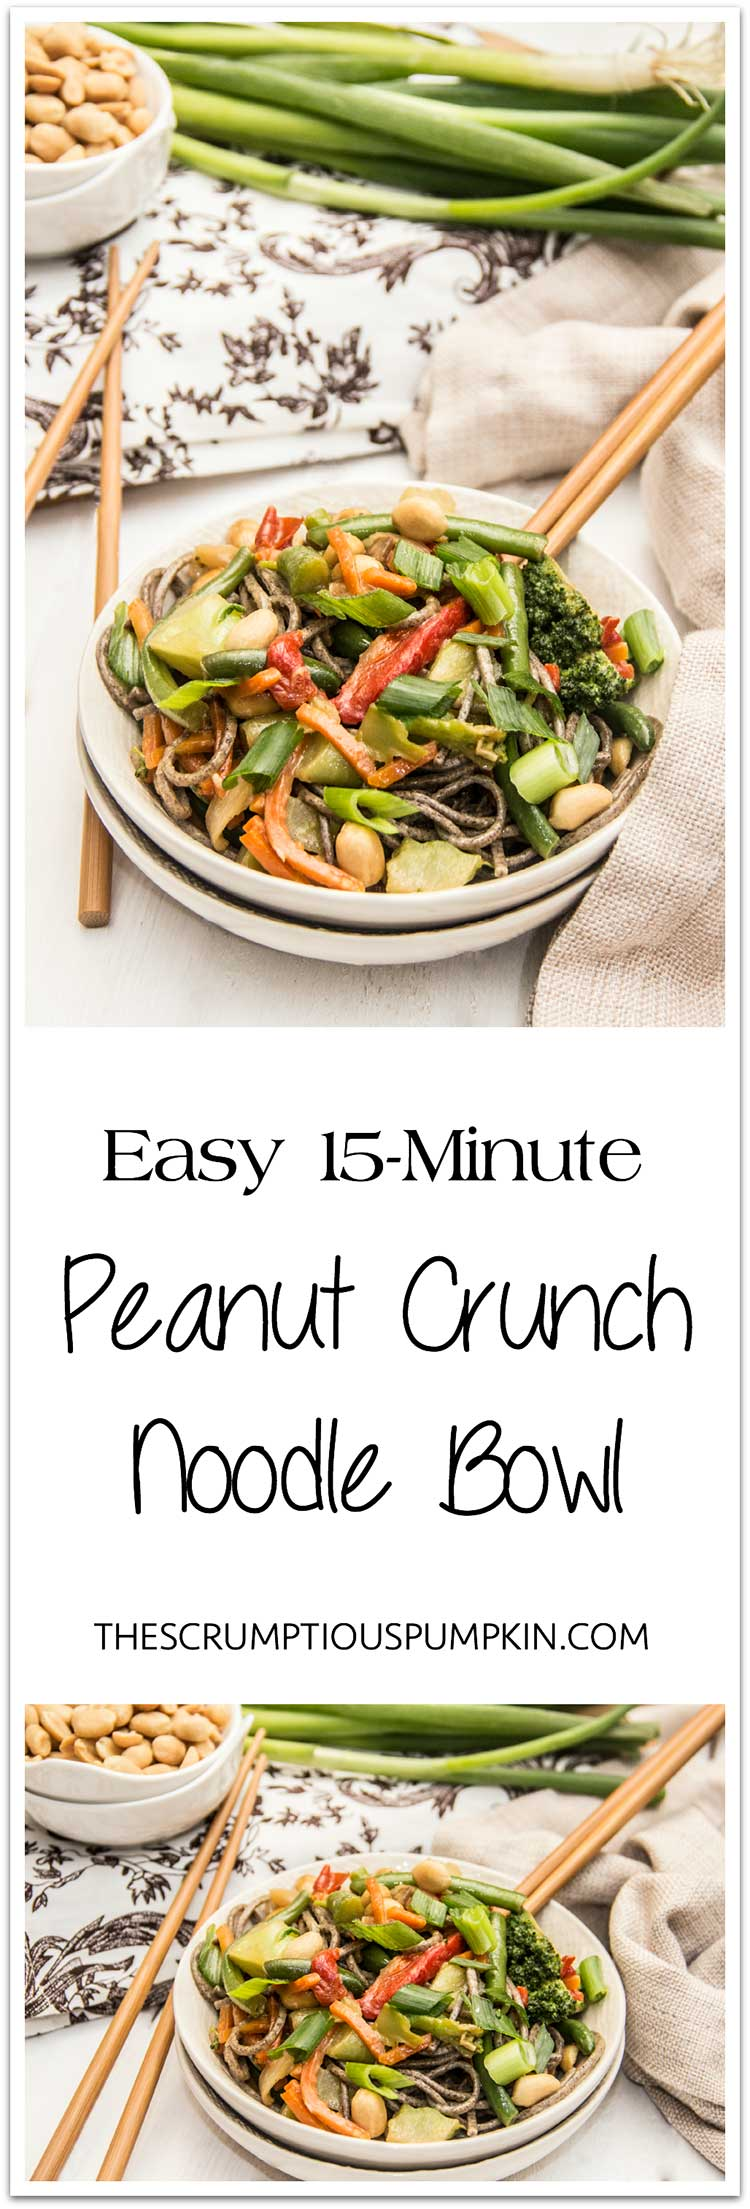 Easy-15-Minute-Peanut-Crunch-Noodle-Bowl